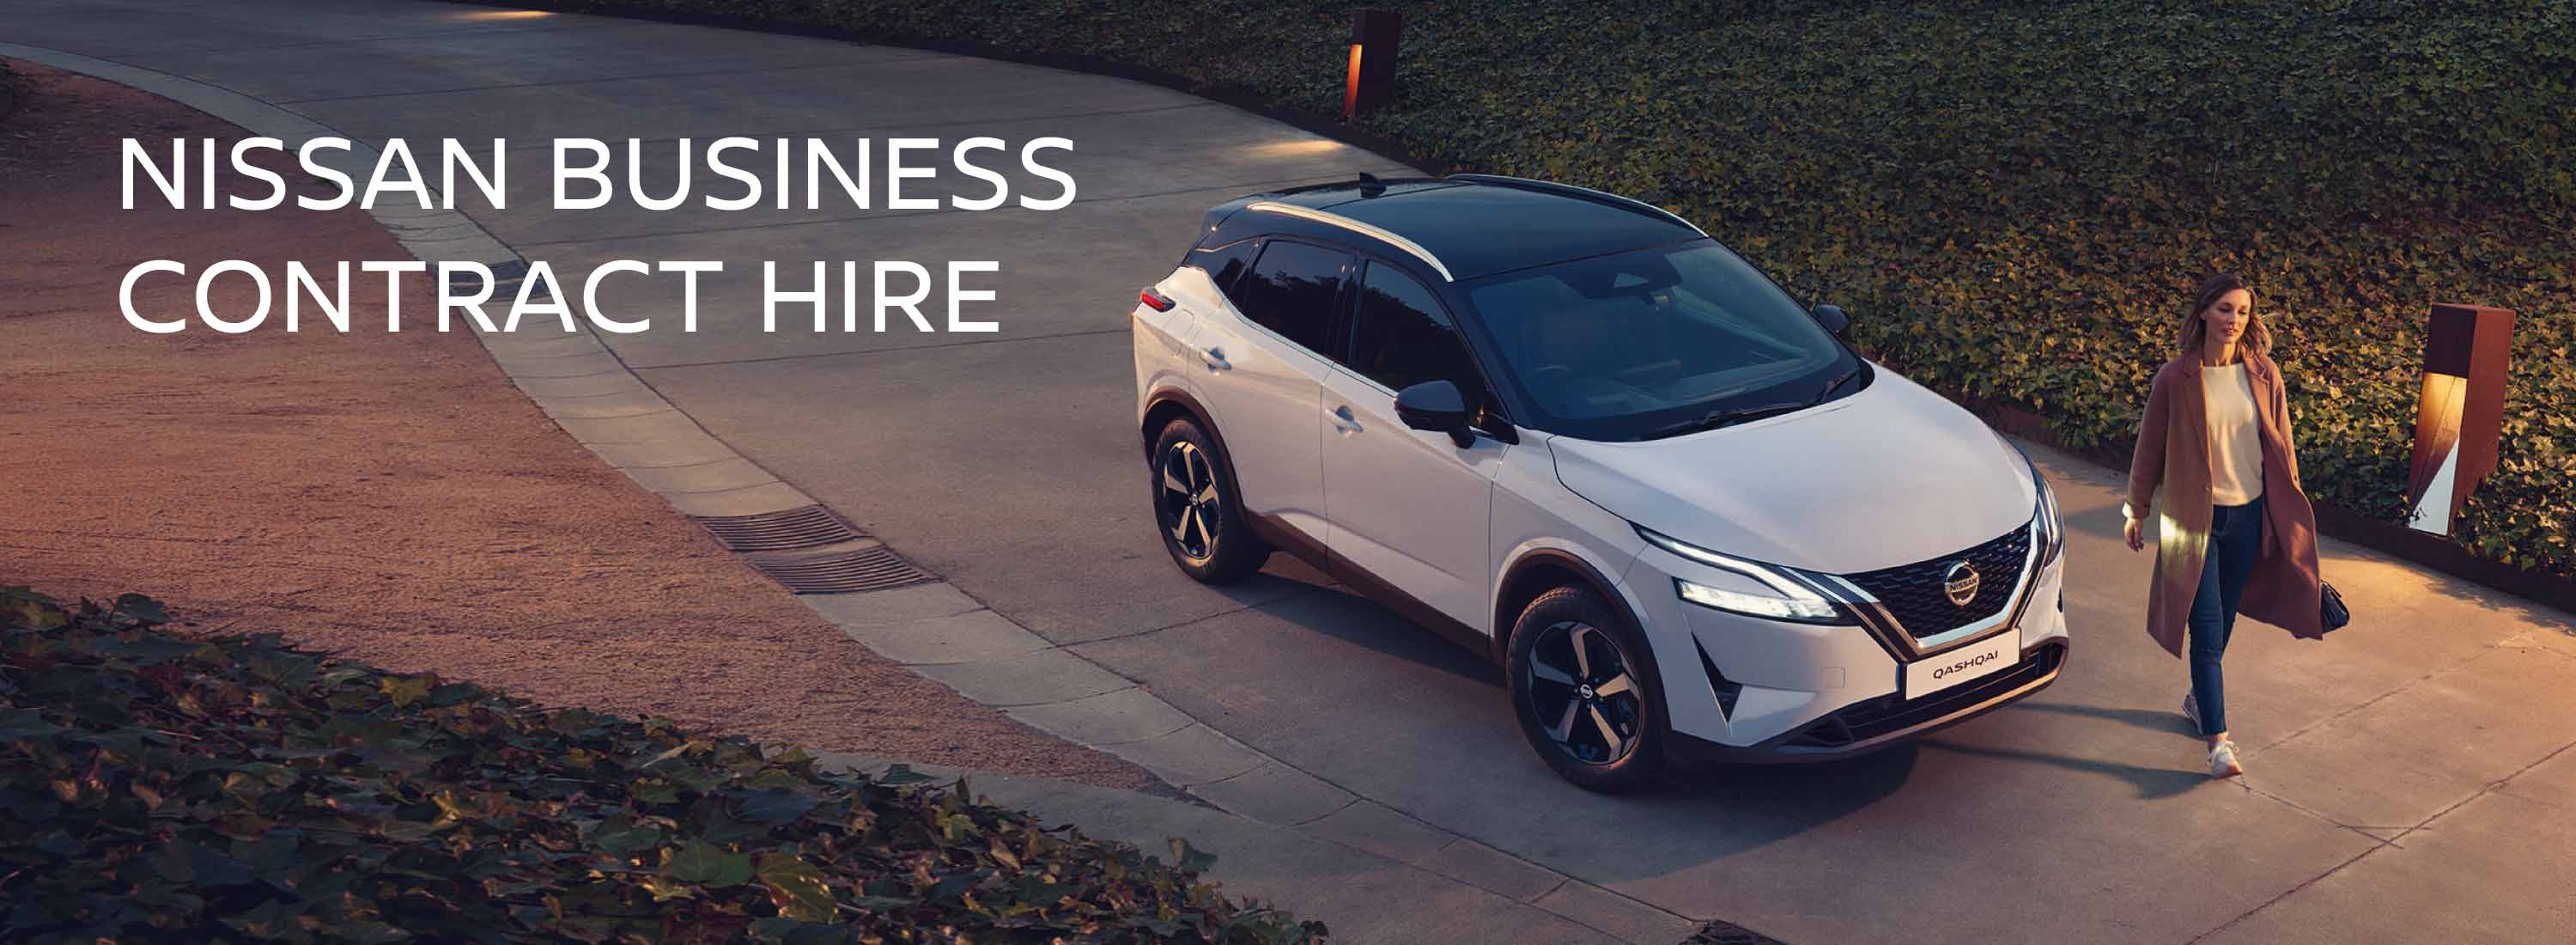 Nissan Business Contract Hire